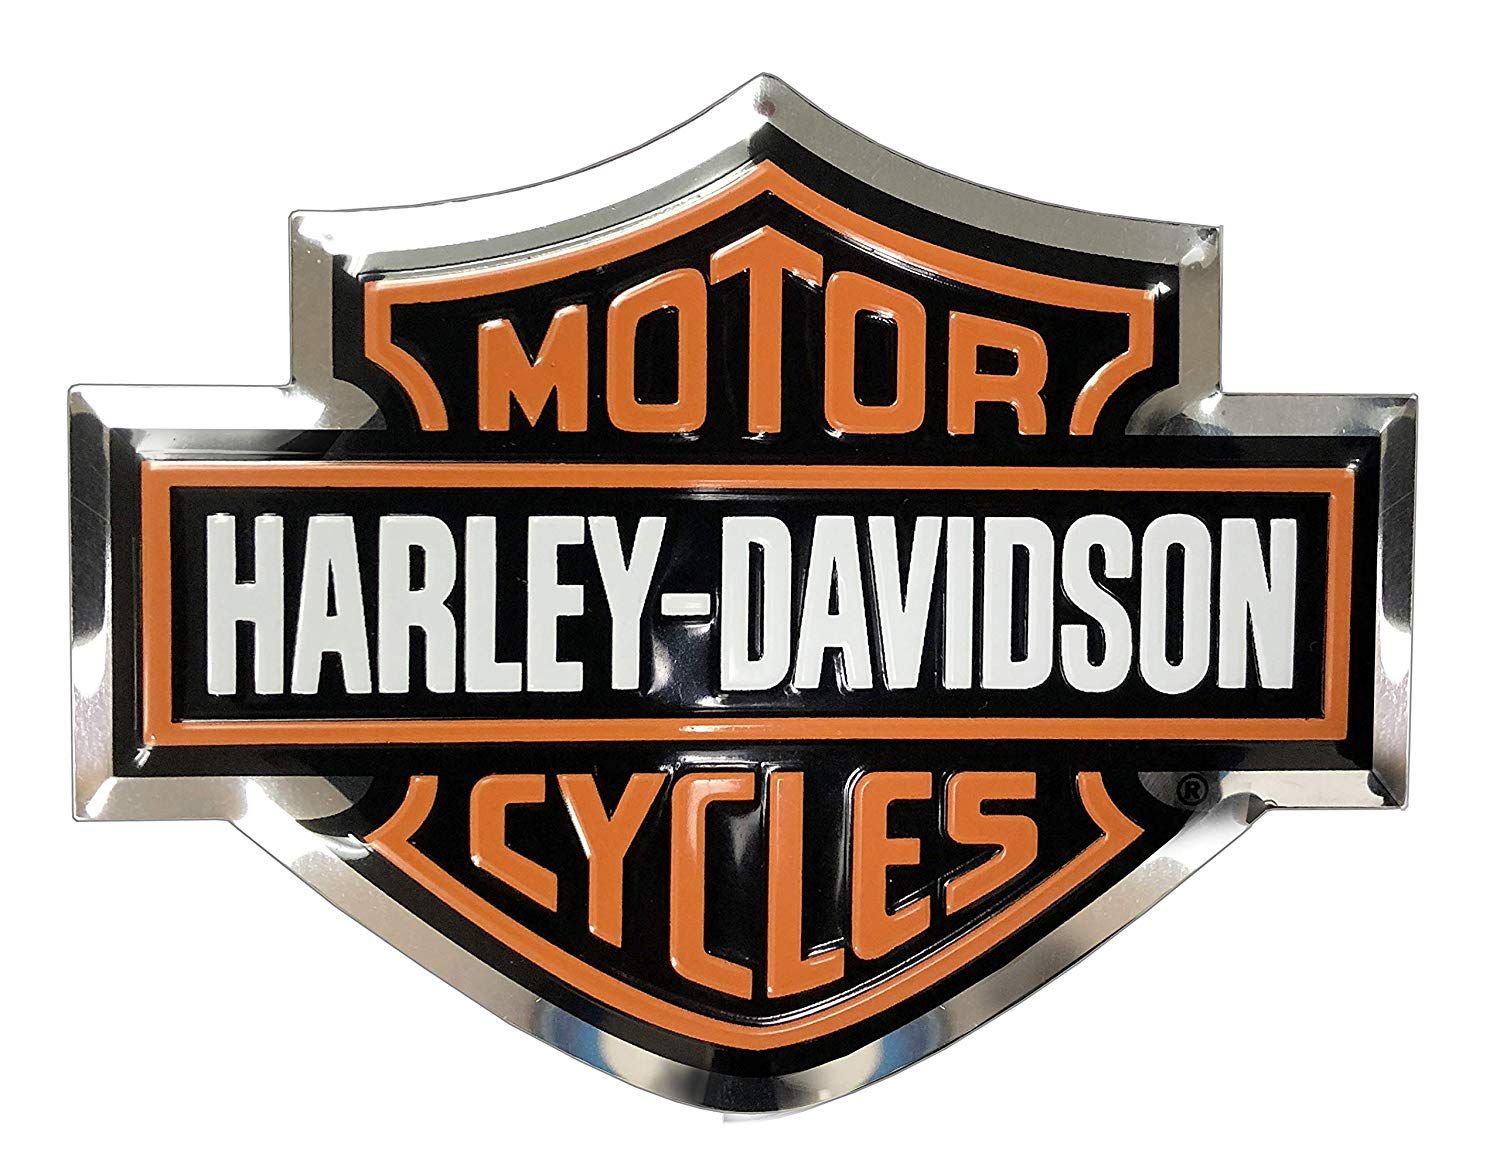 Harley Davidson Bar & Shield Aluminum Decal